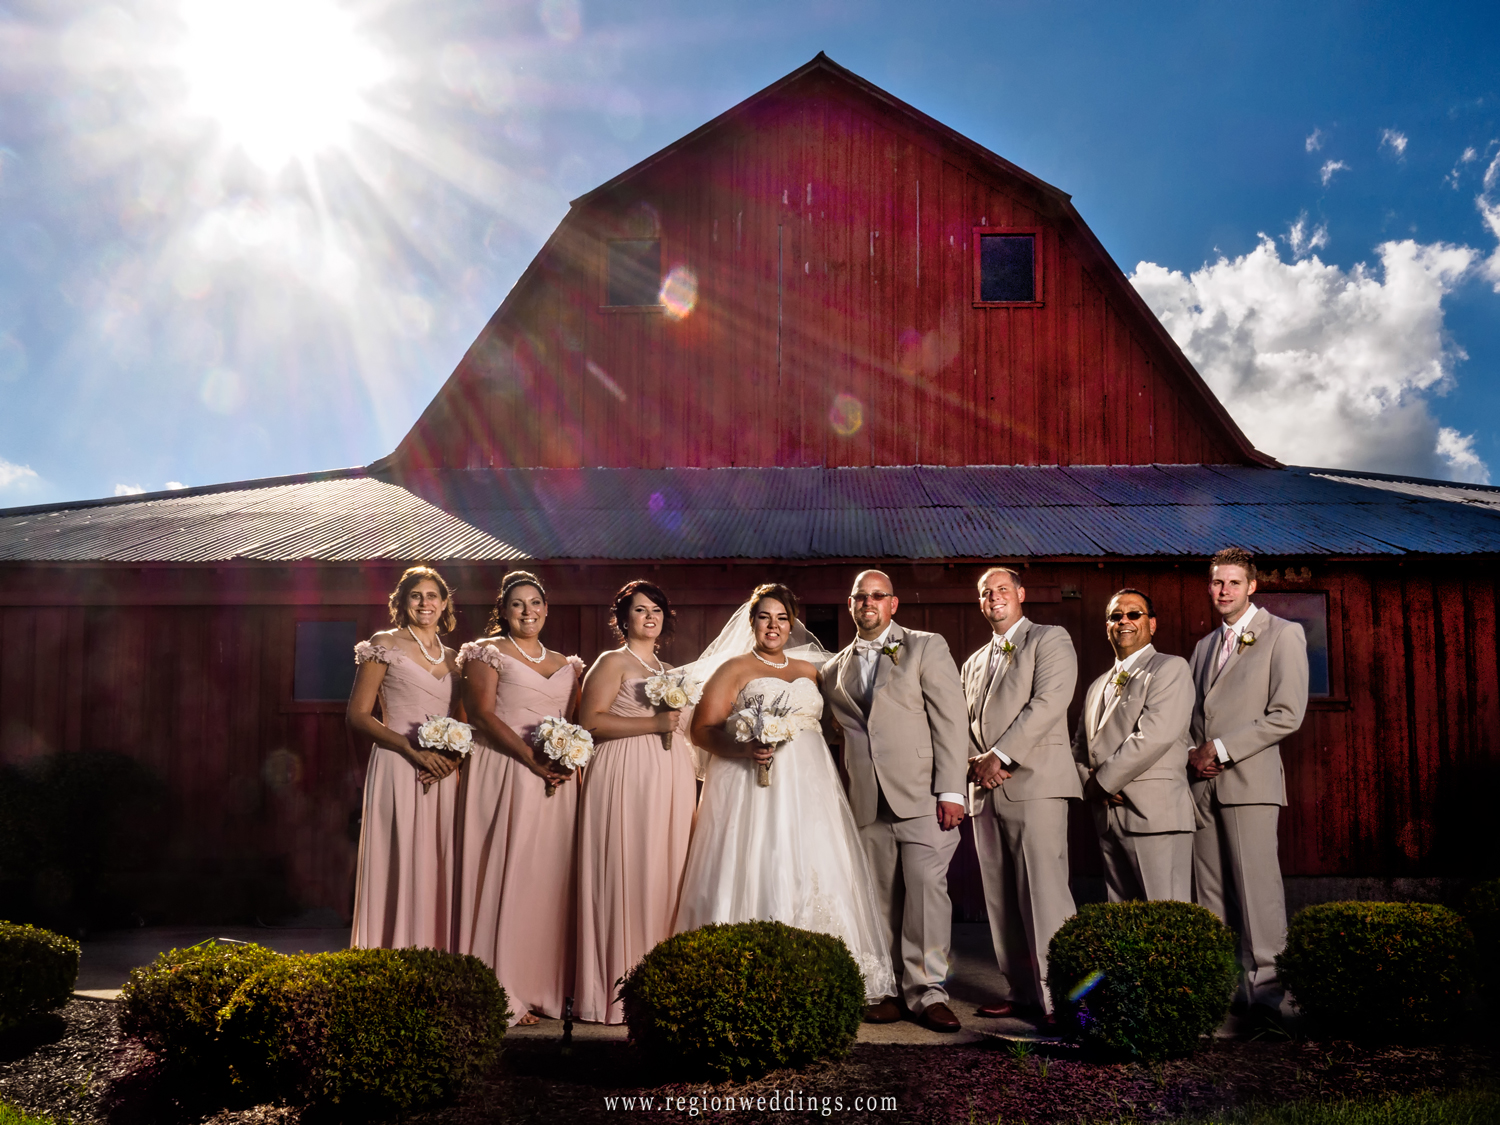 The wedding party at the back of the big red barn.